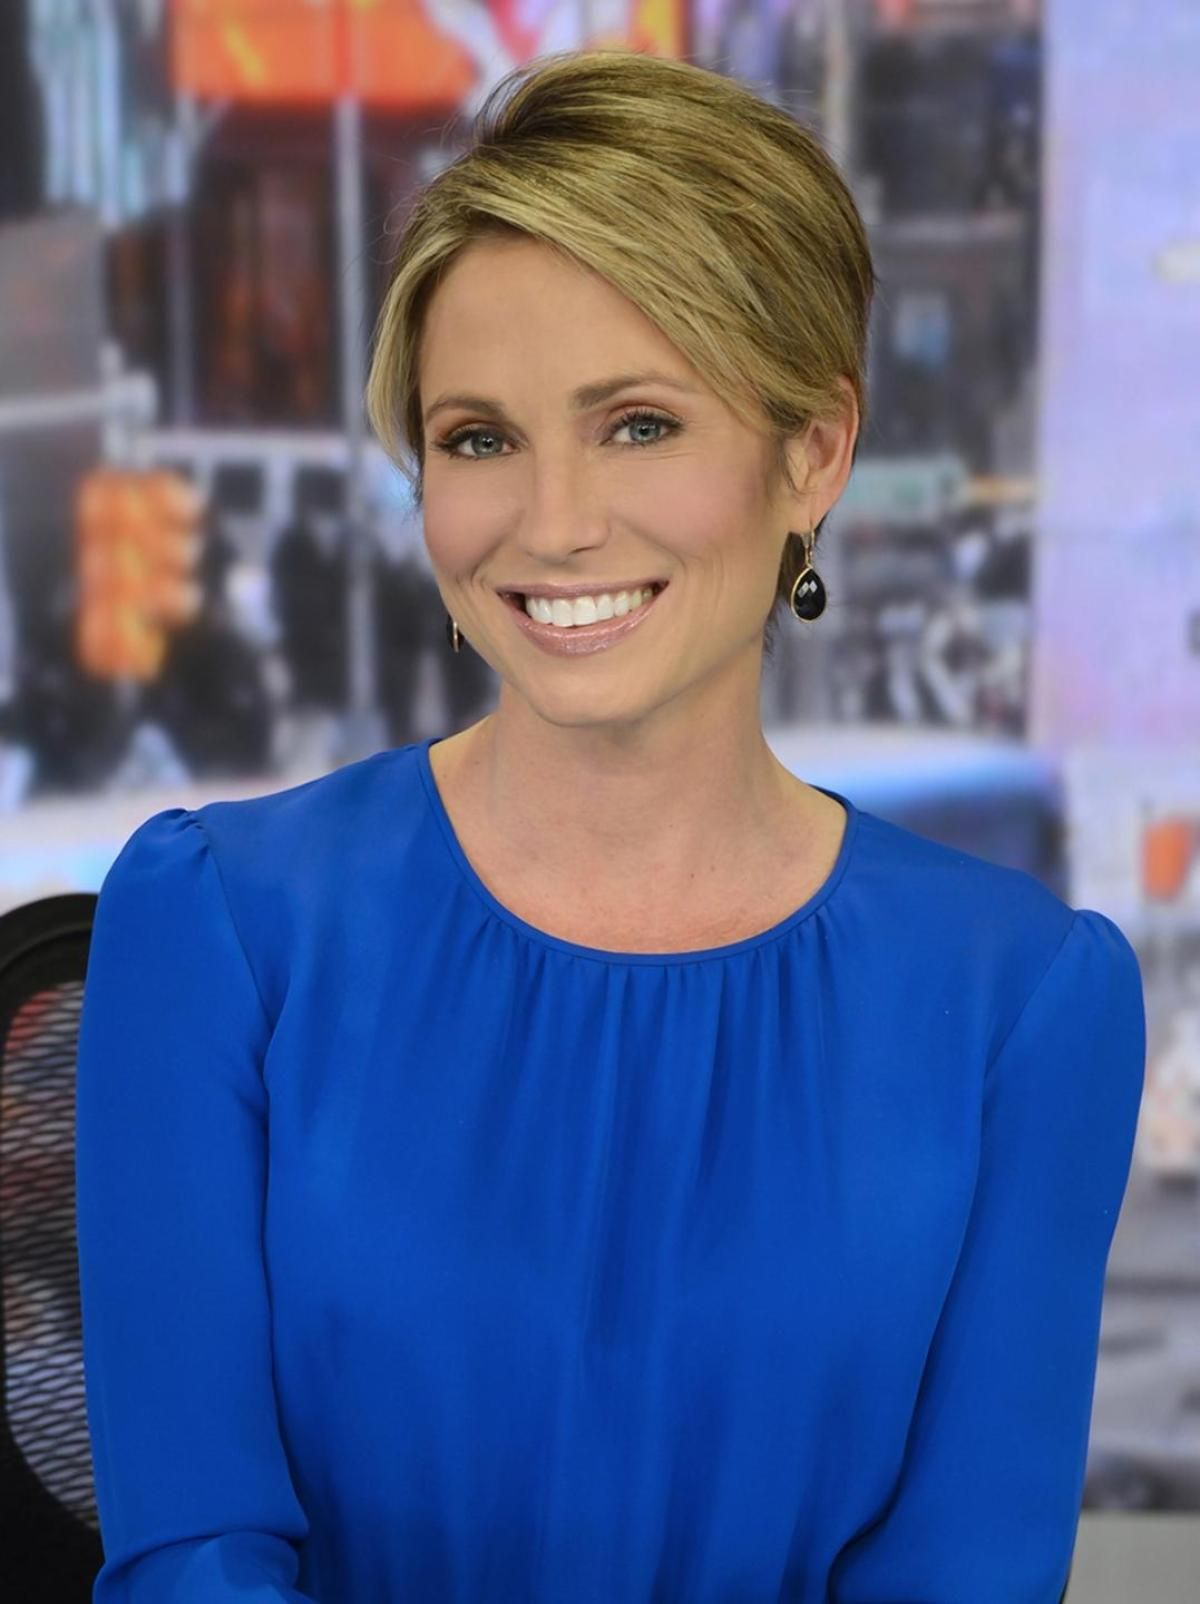 Josh Elliotts Move To Nbc Could Mean A Rivalry With Matt Lauer And